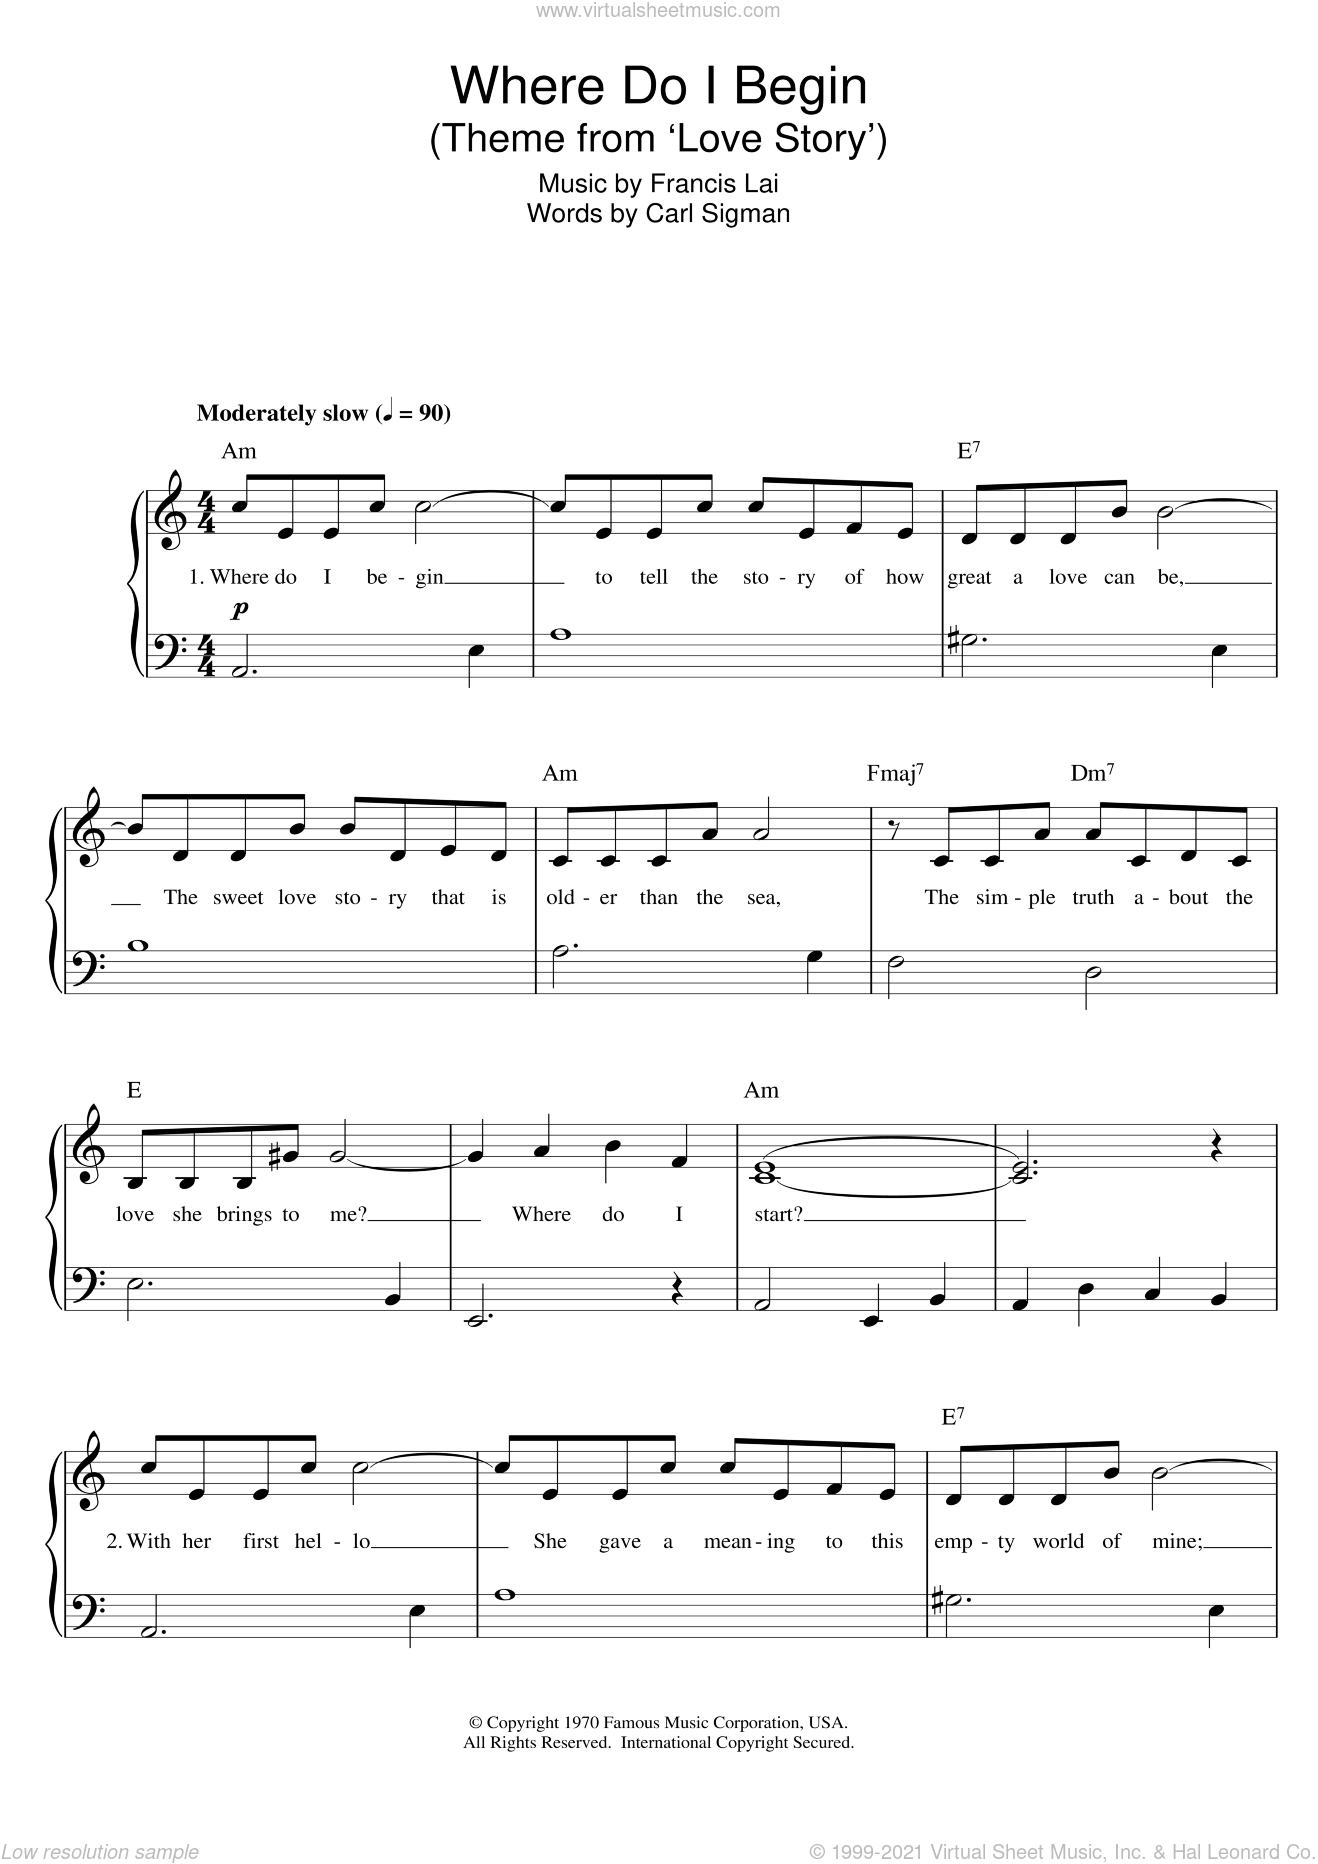 Where Do I Begin sheet music for piano solo by Francis Lai And Carl Sigman. Score Image Preview.